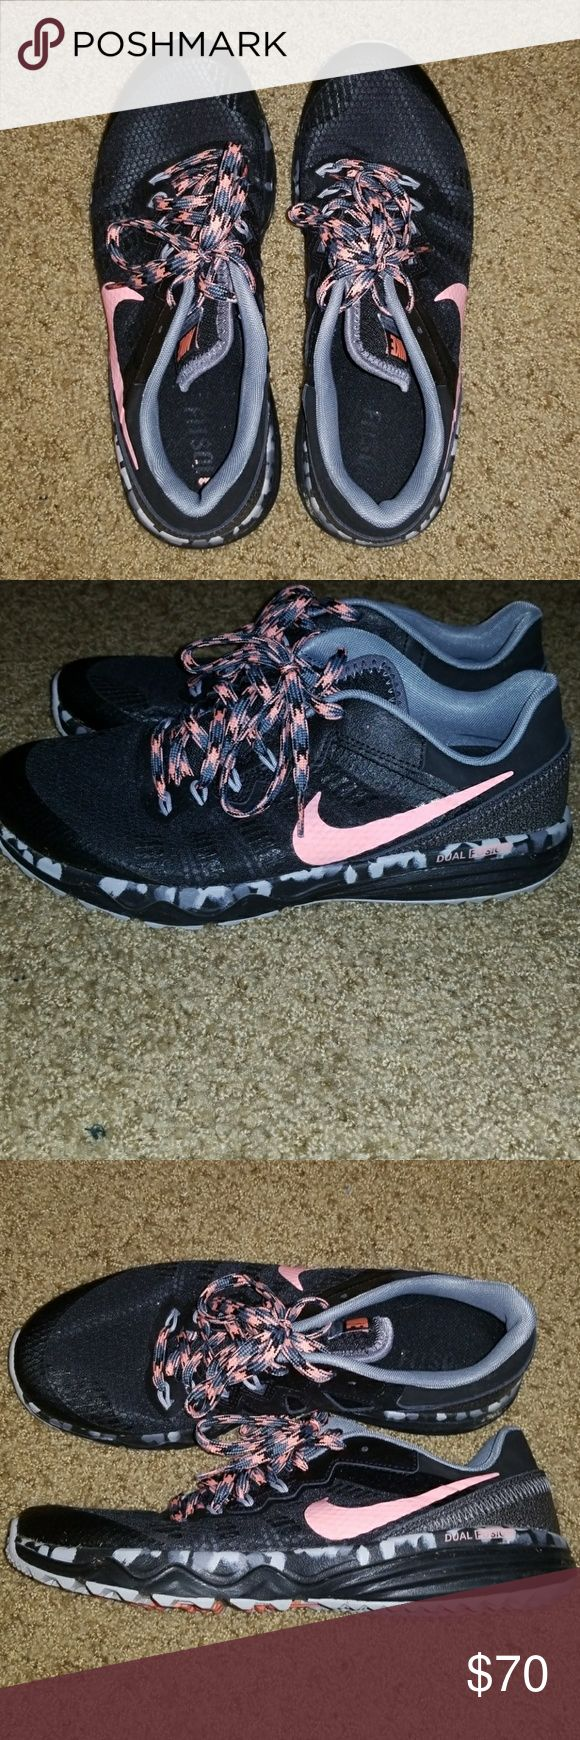 Nike Dual Fusion Black and Pink Nike Dual Fusion. Worn a few times, so these are in great condition still. These are an 8, but could also fit 8.5. Nike Shoes Athletic Shoes